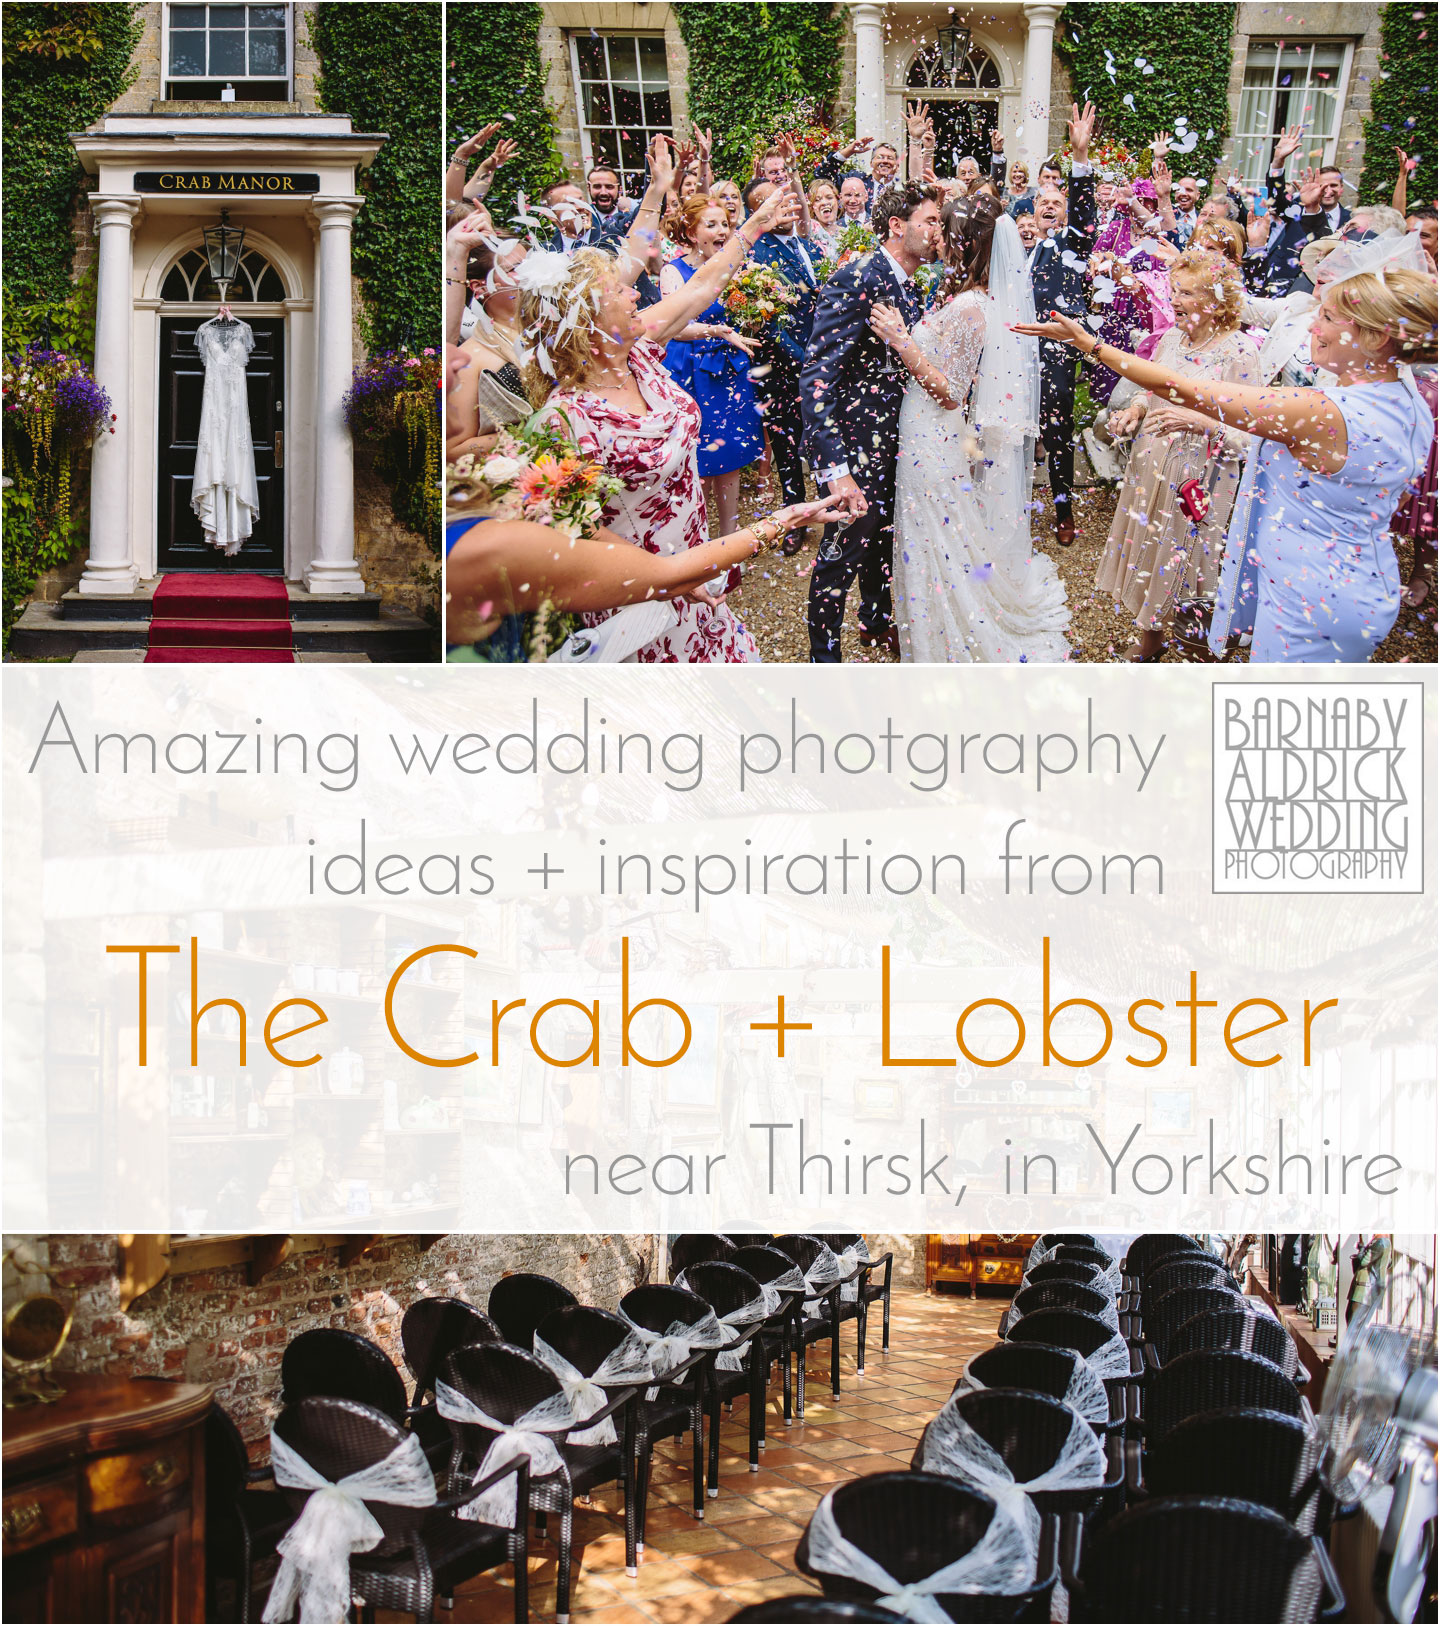 Amazing wedding photography ideas and inspiration at Crab Manor and the Crab and Lobster